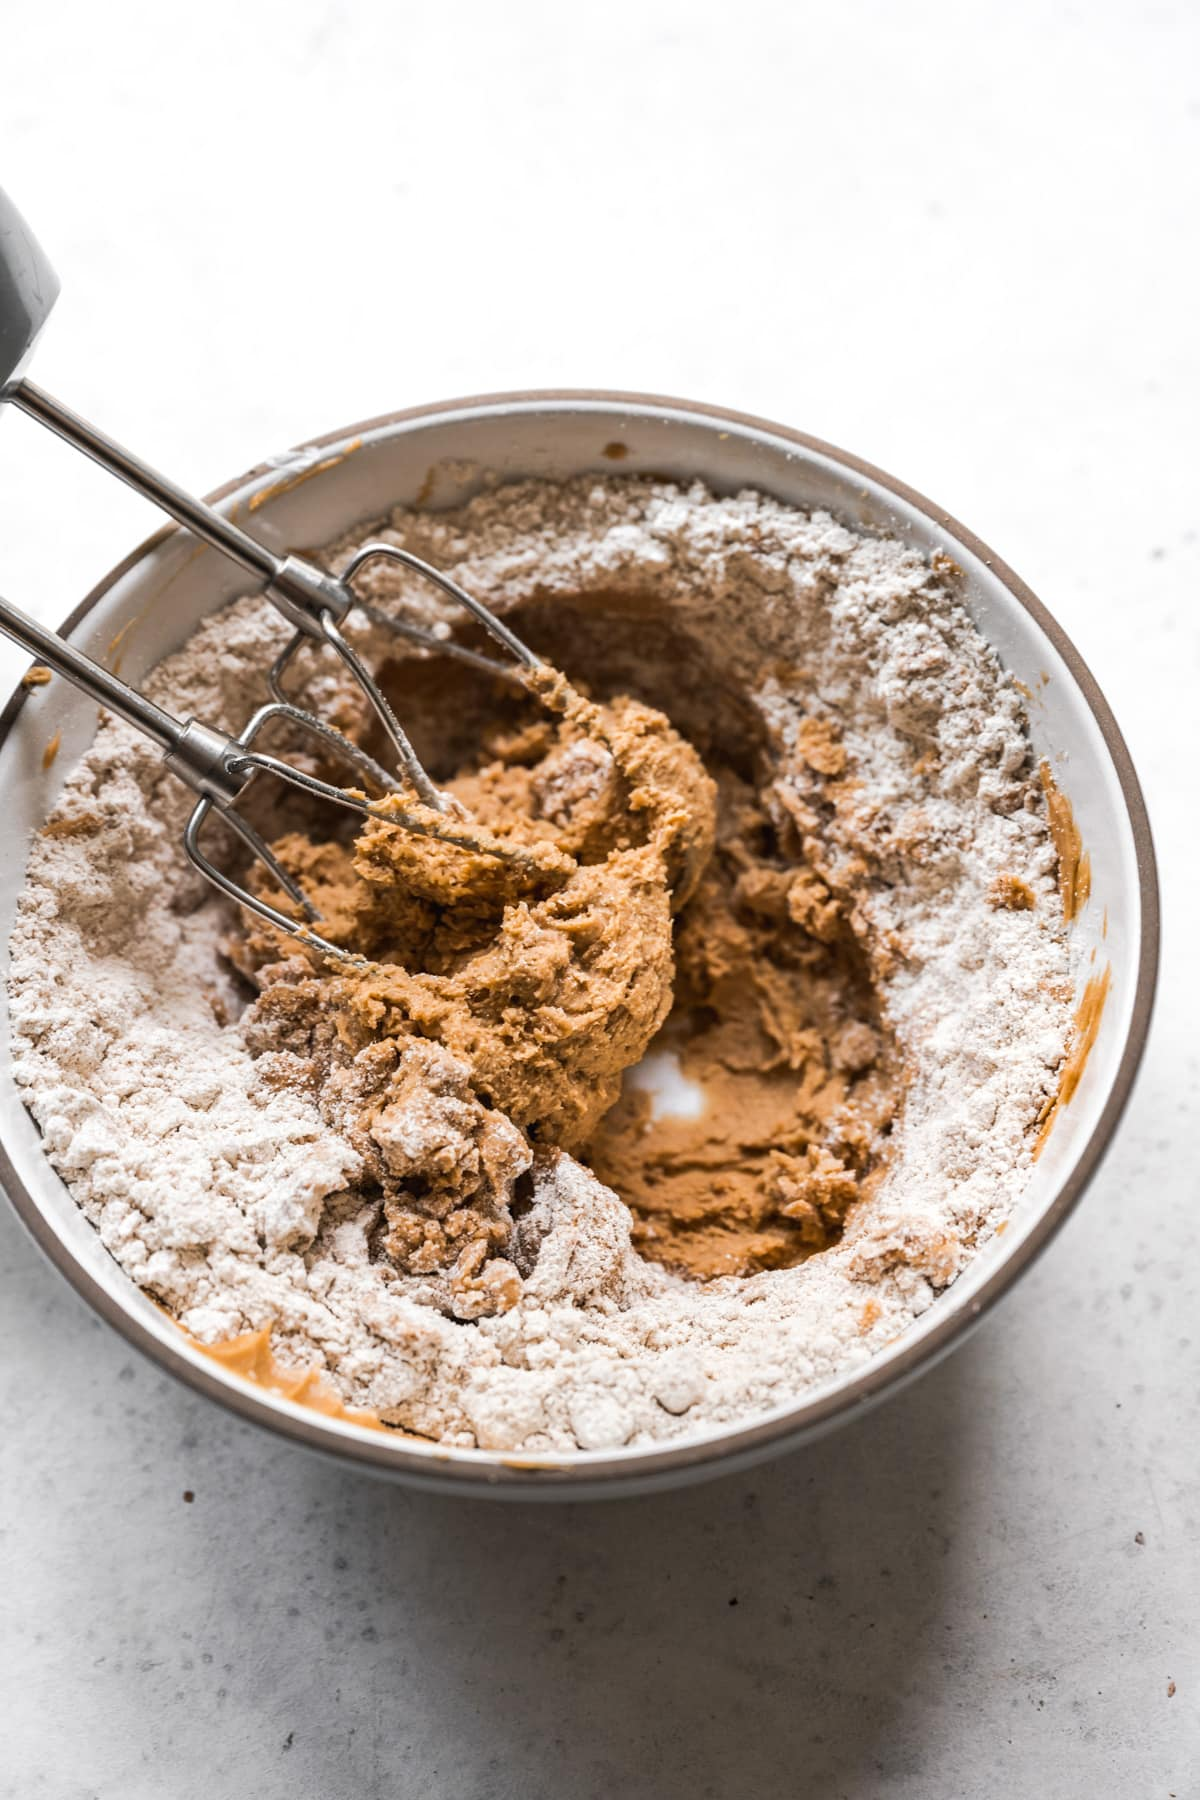 flour and peanut butter mixture being combined in mixing bowl with electric mixer.